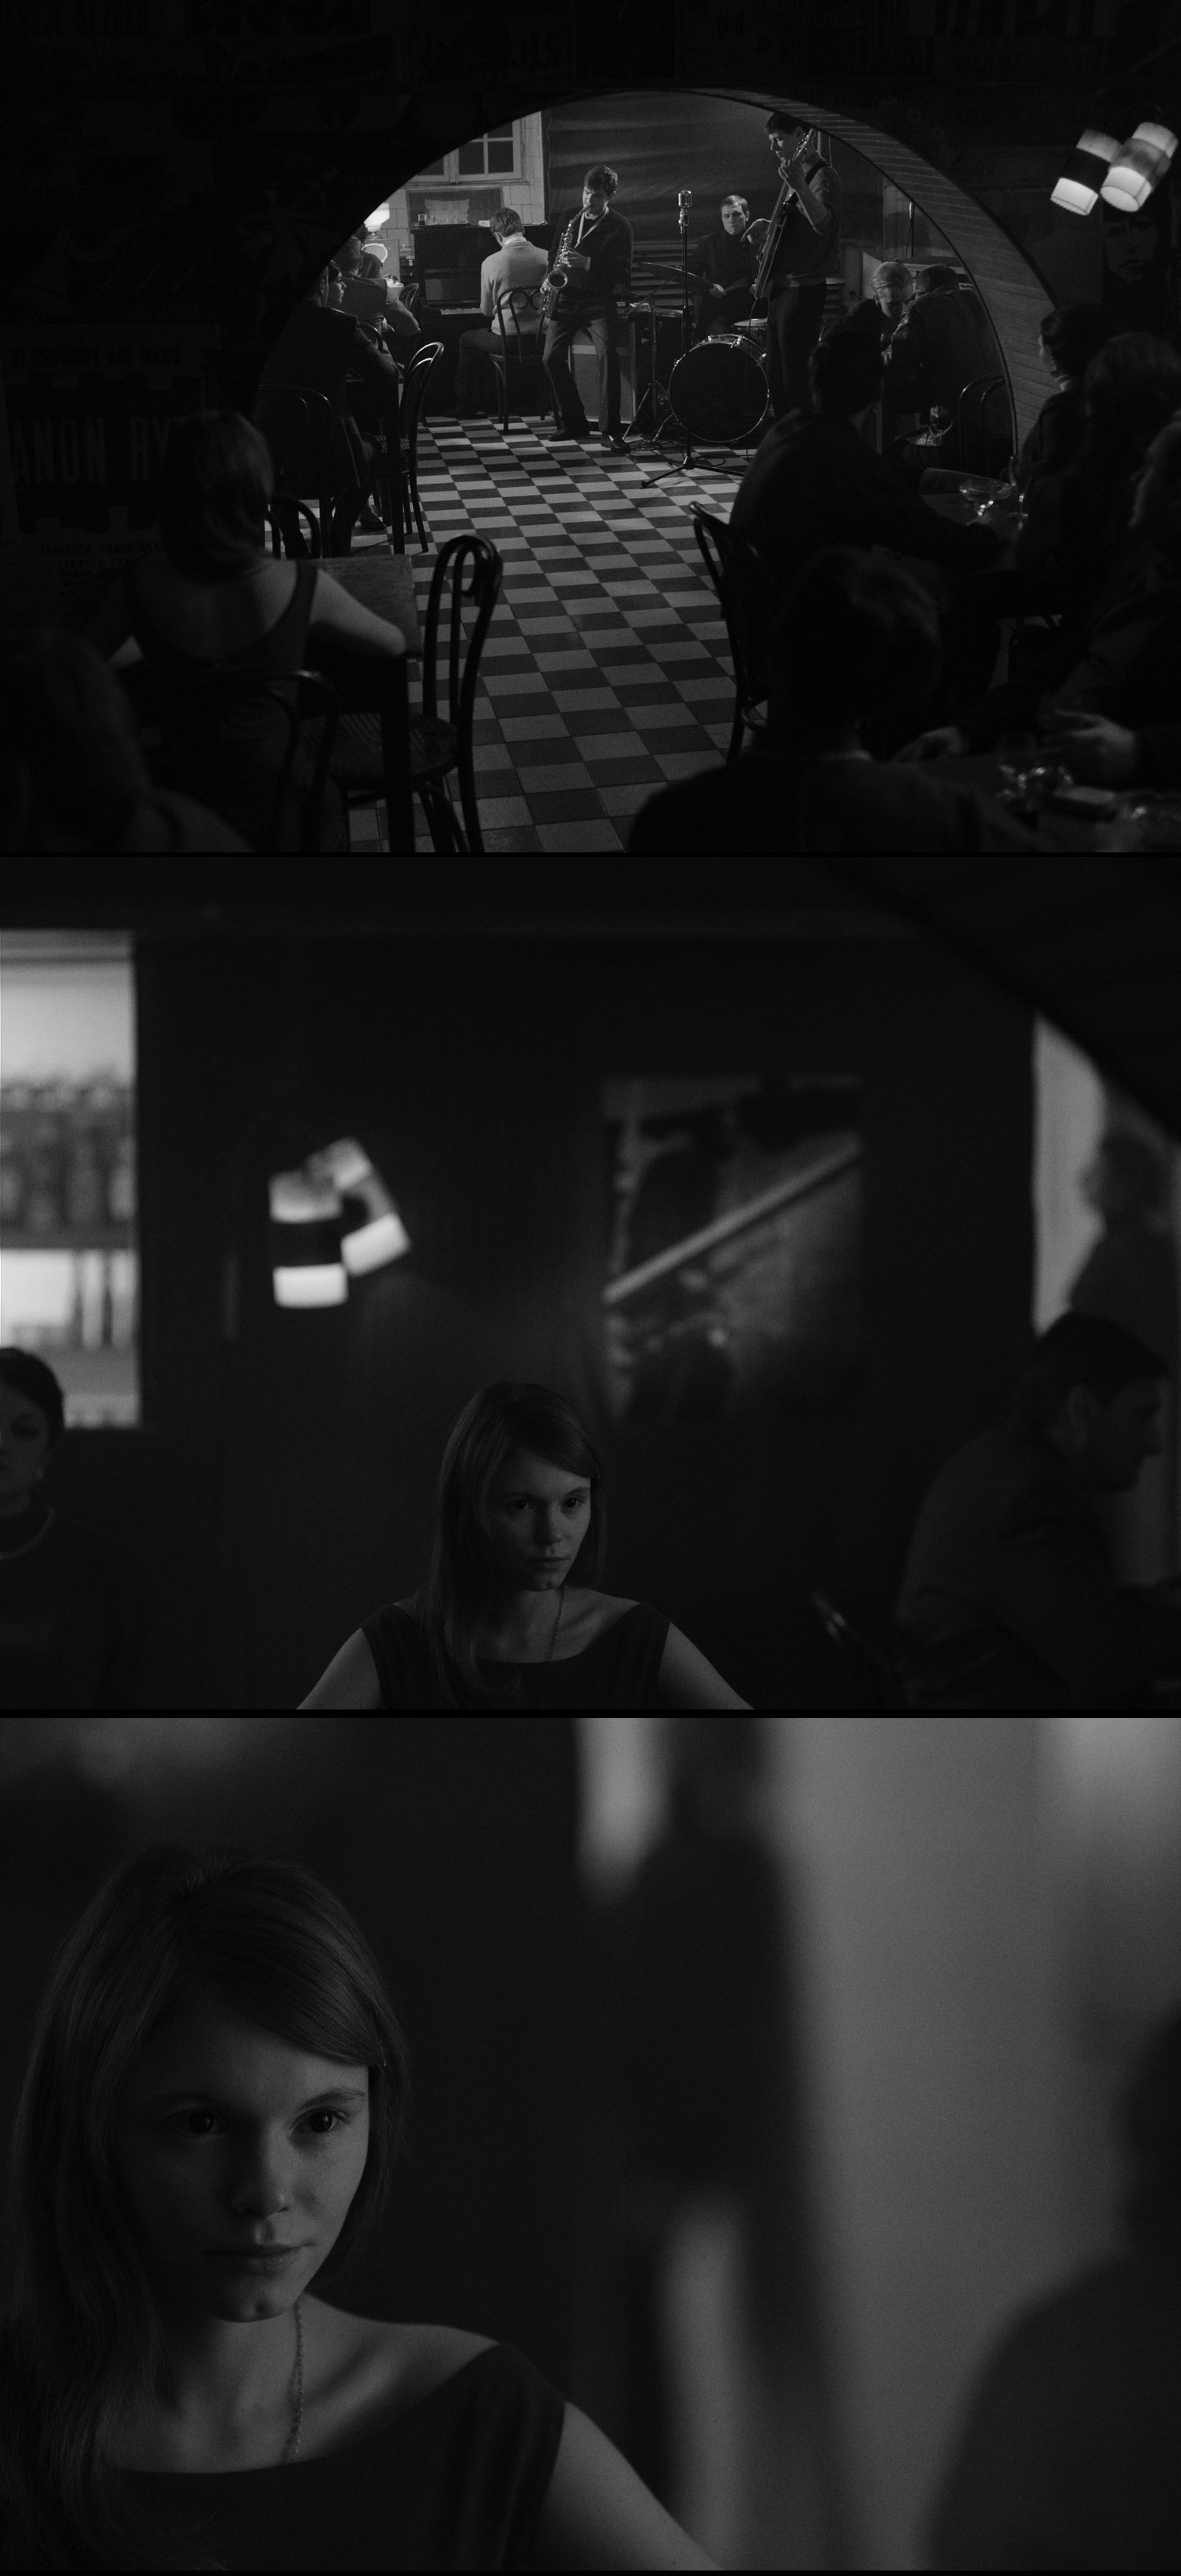 IDA scene7 club night interior -thefilmbook-